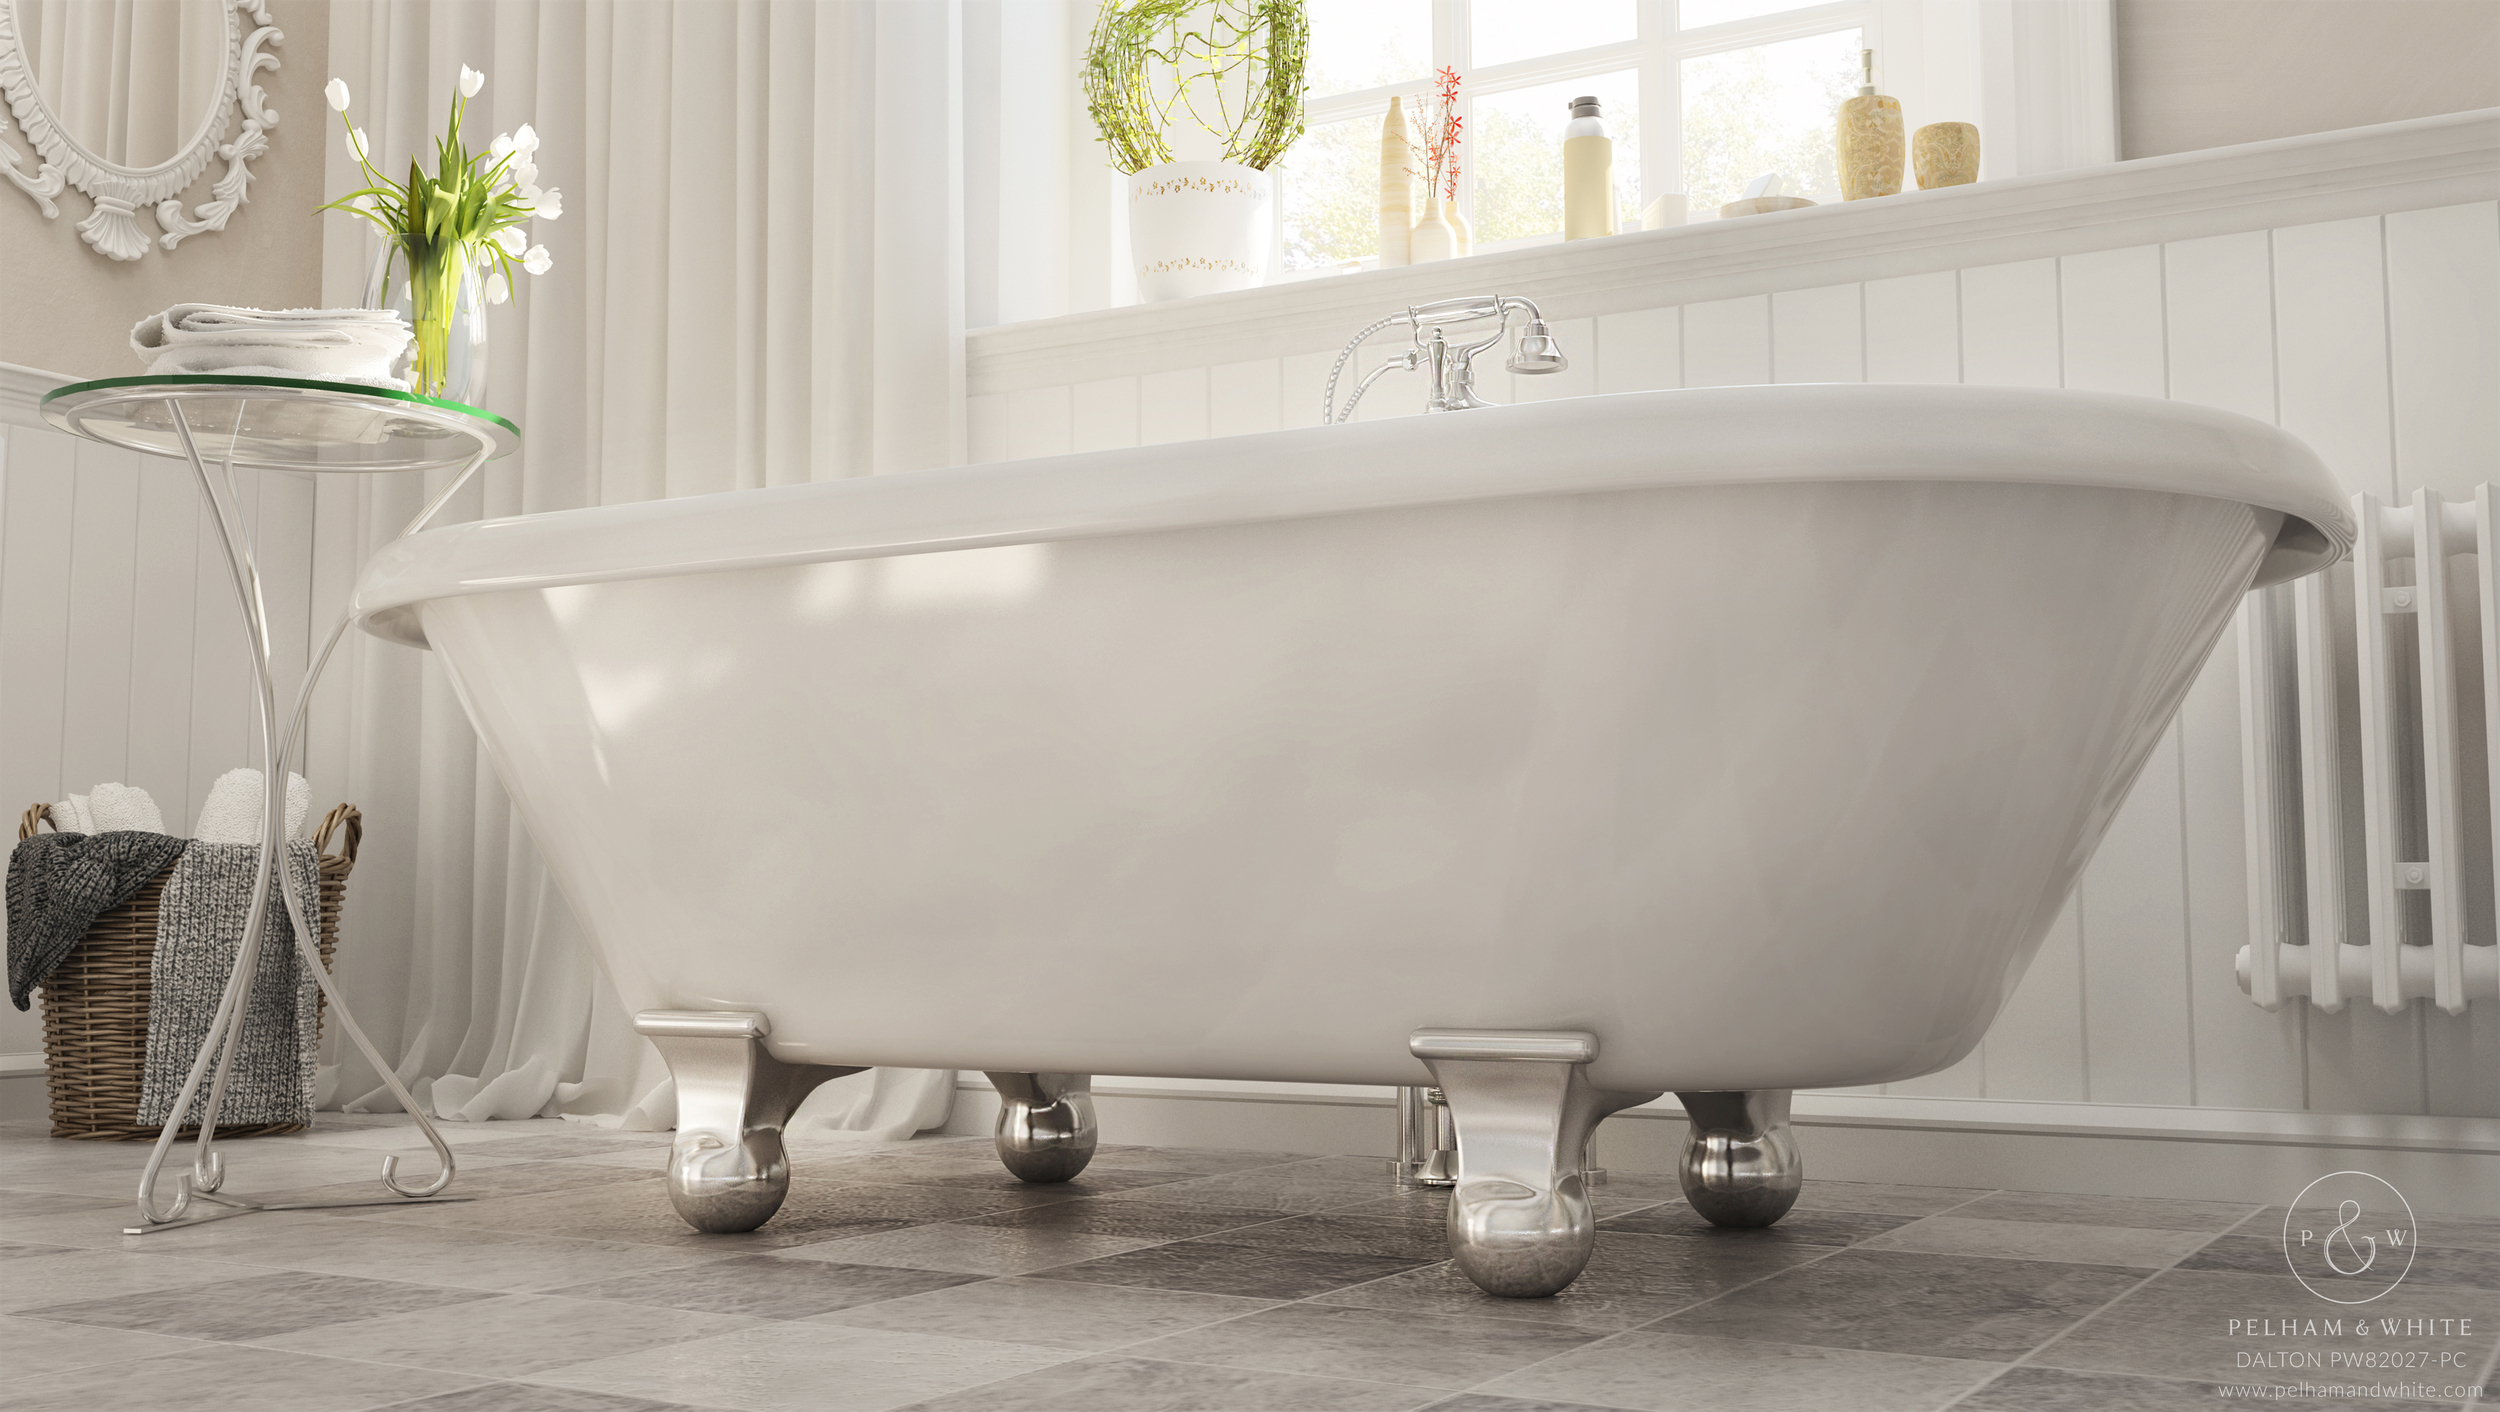 Selecting the Right Size Tub for the Space Available — Pelham and White